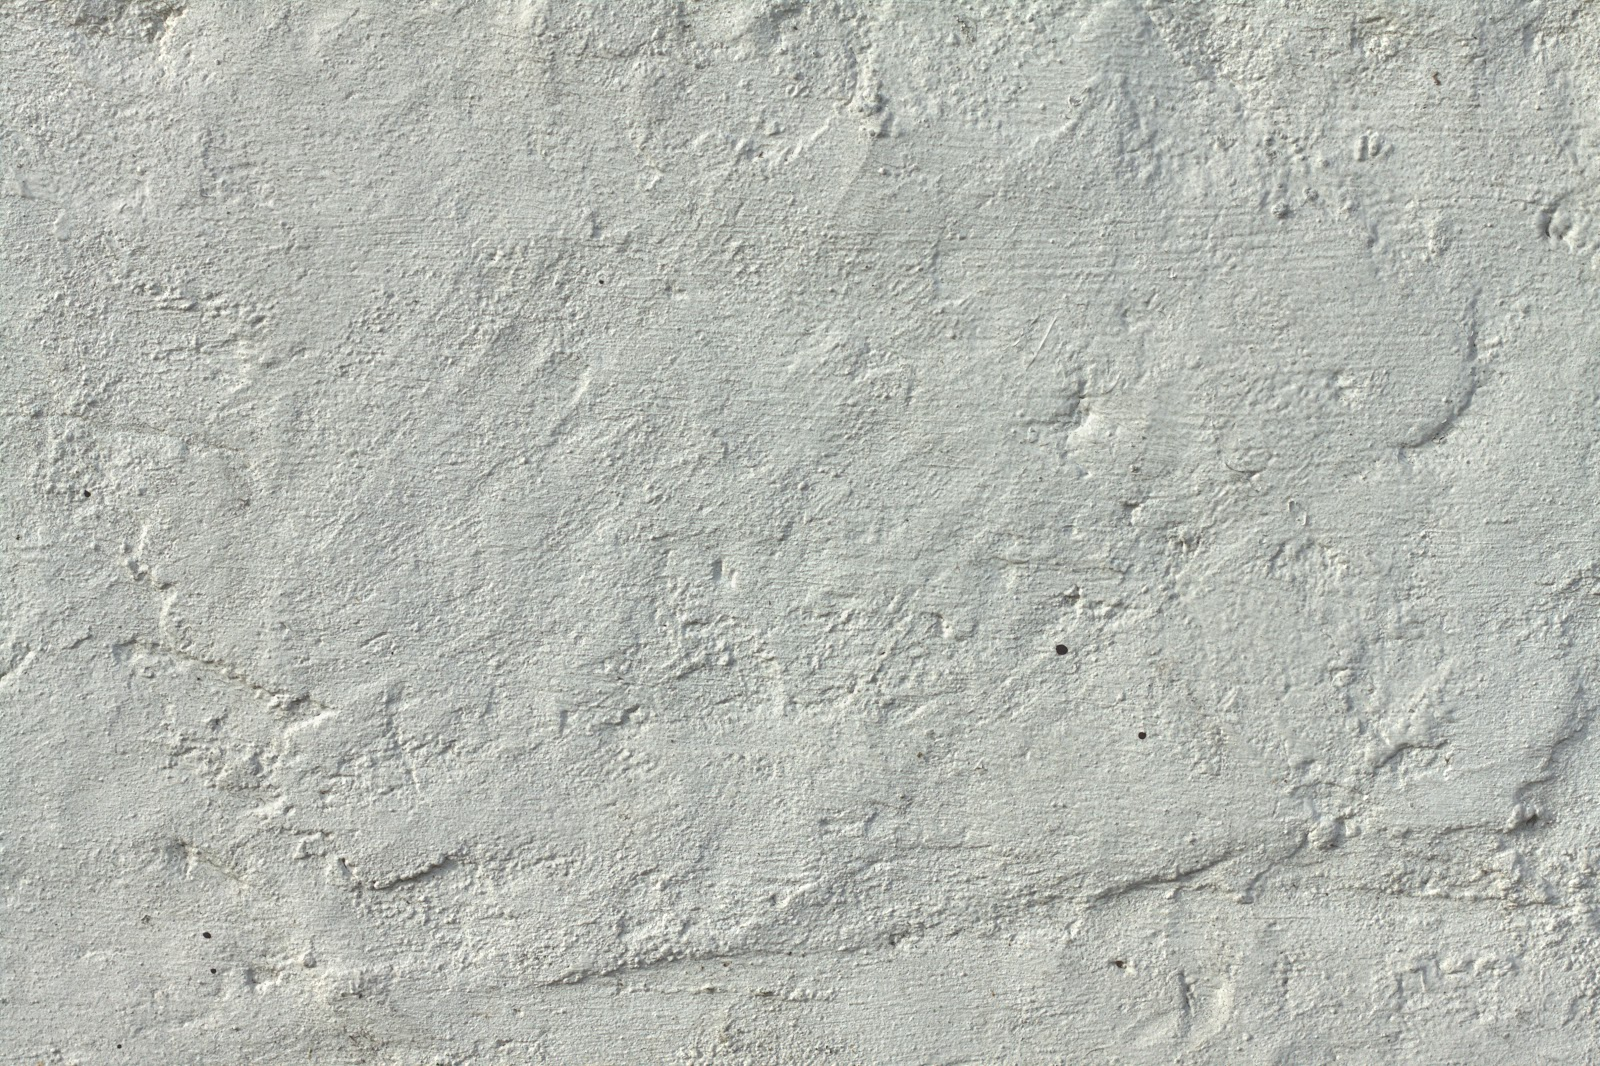 Faux Finishes For Walls High Resolution Seamless Textures 10 High Resolution